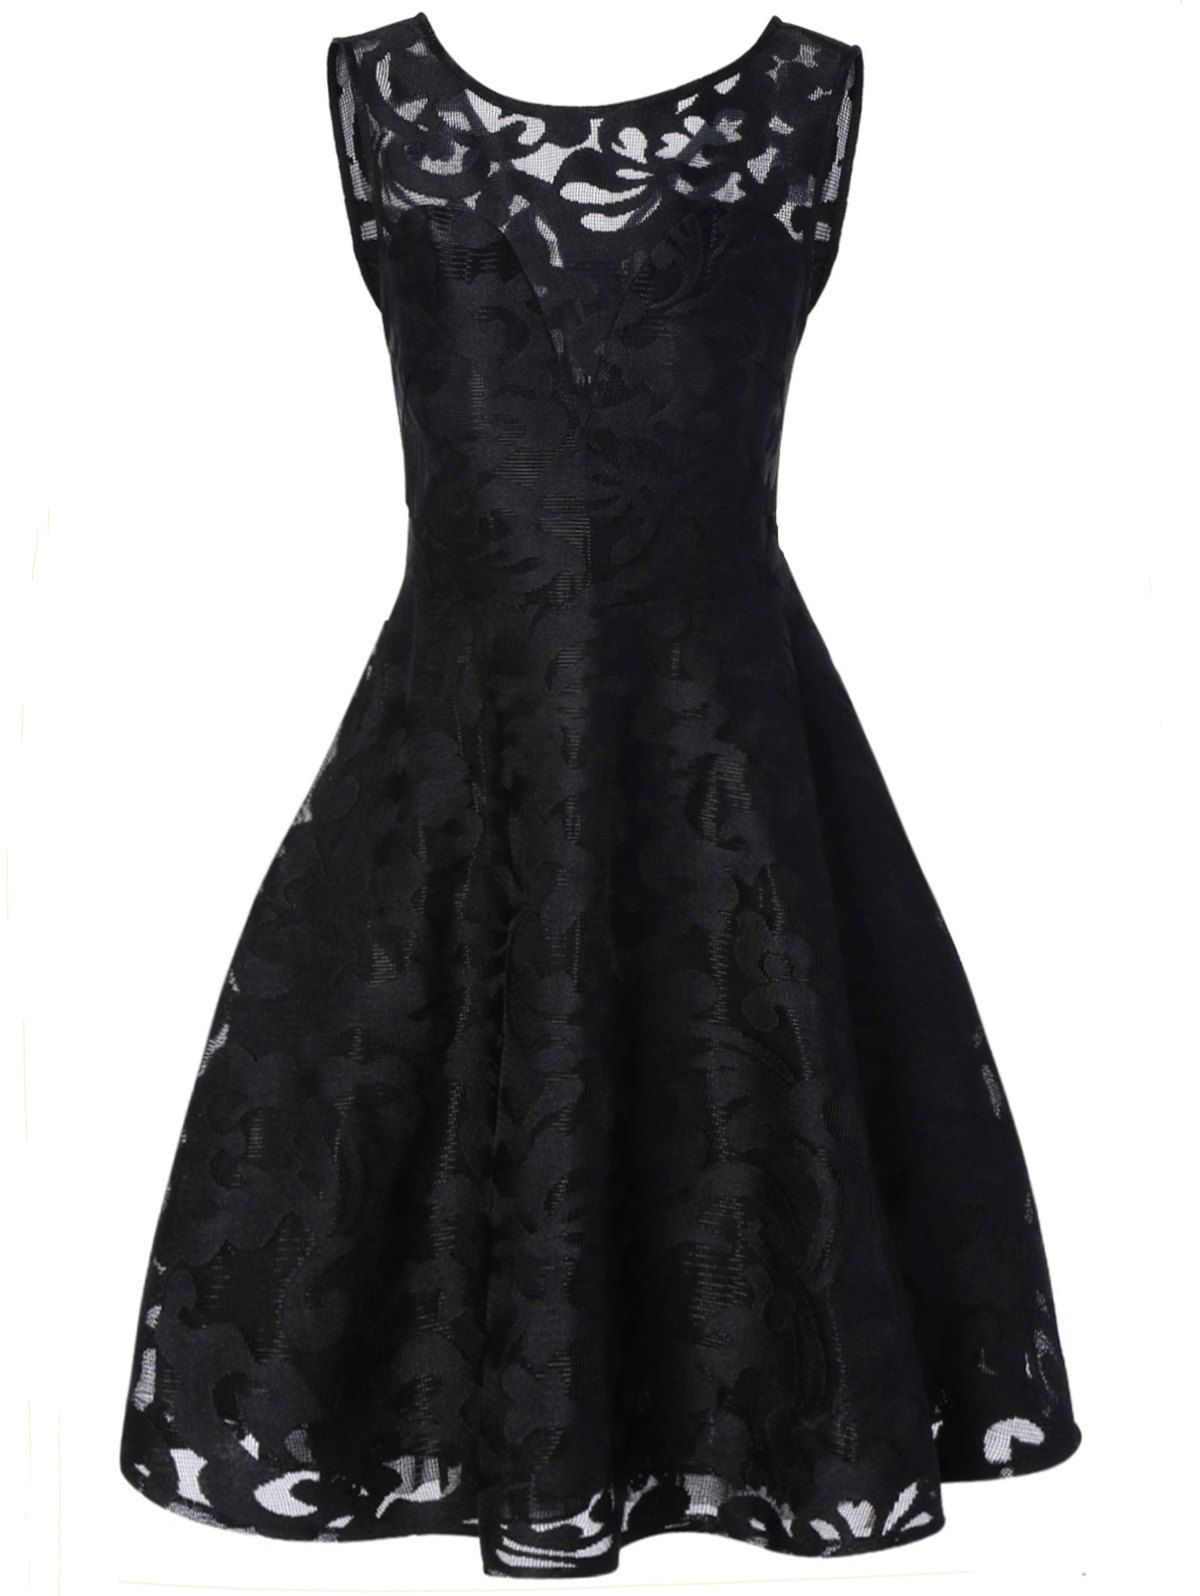 Sheer Lace Plus Size Vintage Party Short Prom Dress In Black,3xl | Twinkledeals.com